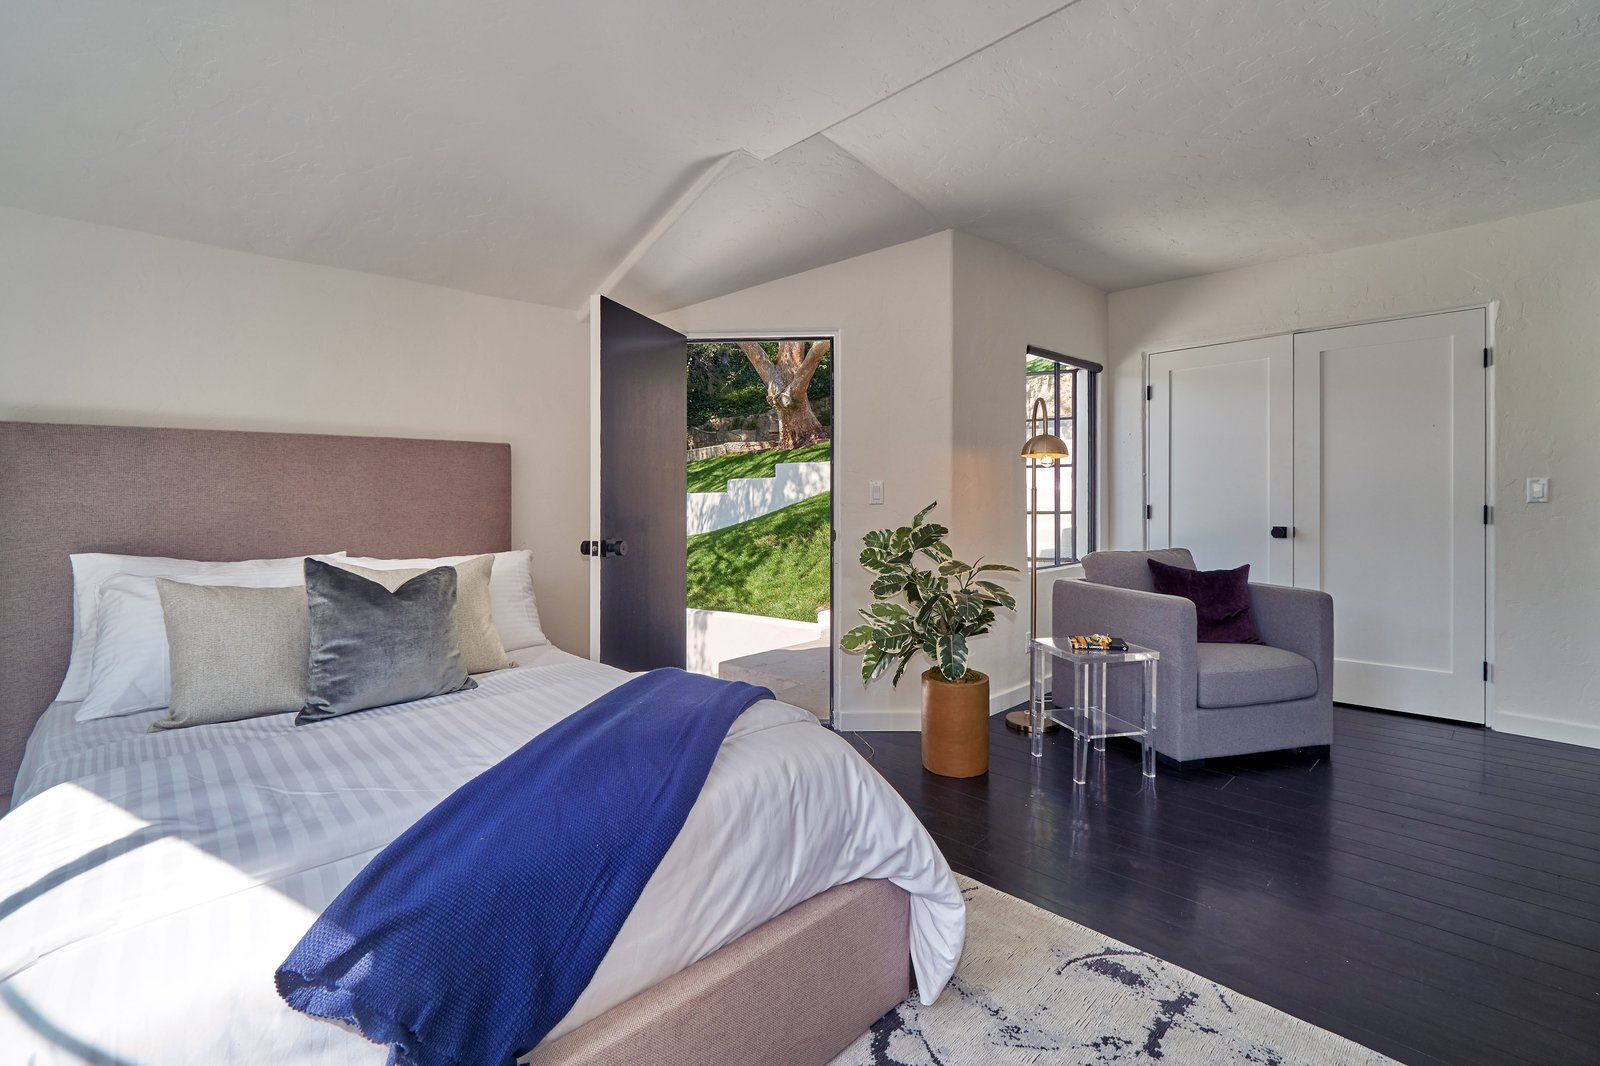 Bedroom, Chair, Dark Hardwood Floor, Bed, Floor Lighting, and Rug Floor The private entrance leads to the backyard.     Best Photos from Snatch Up James Dean's Former Hollywood Home For $4M